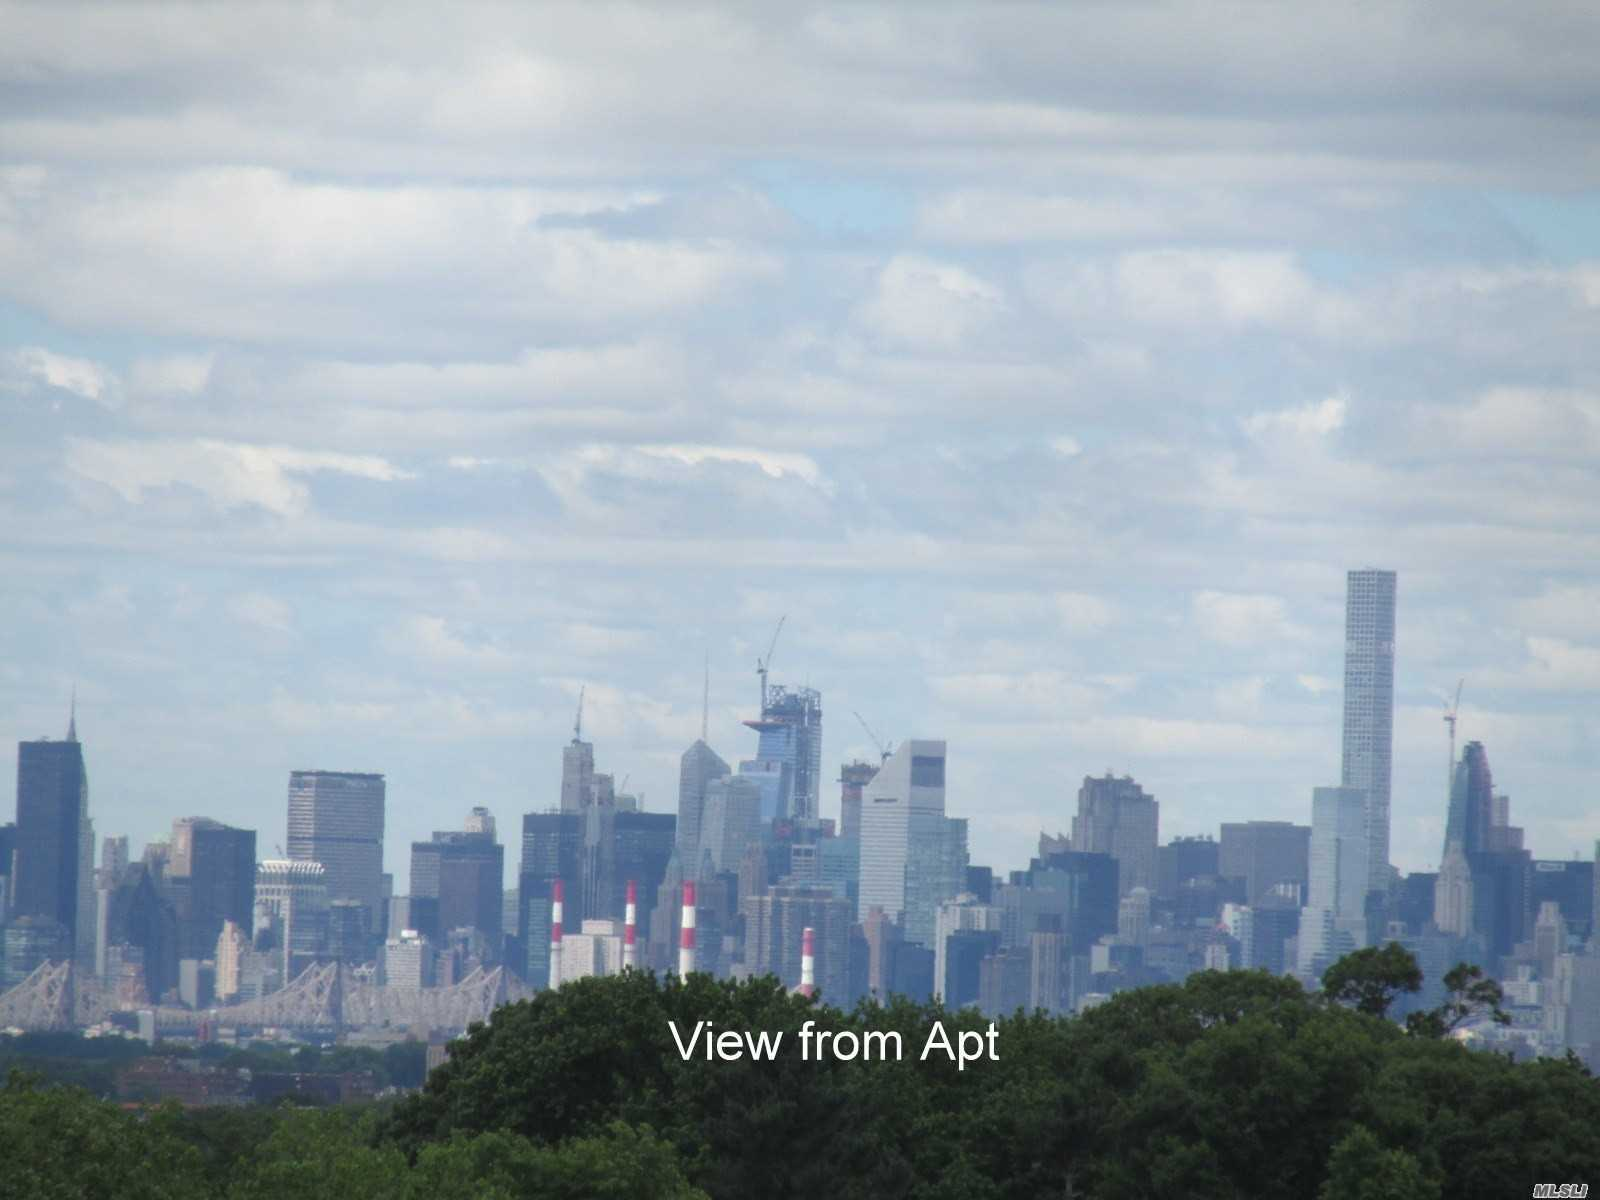 Fabulous New York City Skyline View From This Split Two Bedroom/Two Bath; Eik;Living Room/Dining Area; Original Cabinets; Year Round Health/Fitness Club;Shopping Arcade; Restaurant On Premises; Deli, Beauty Salon, Dry Cleaners; Tennis Courts, Library Plus Much More; Near Transportation And Shopping Center.